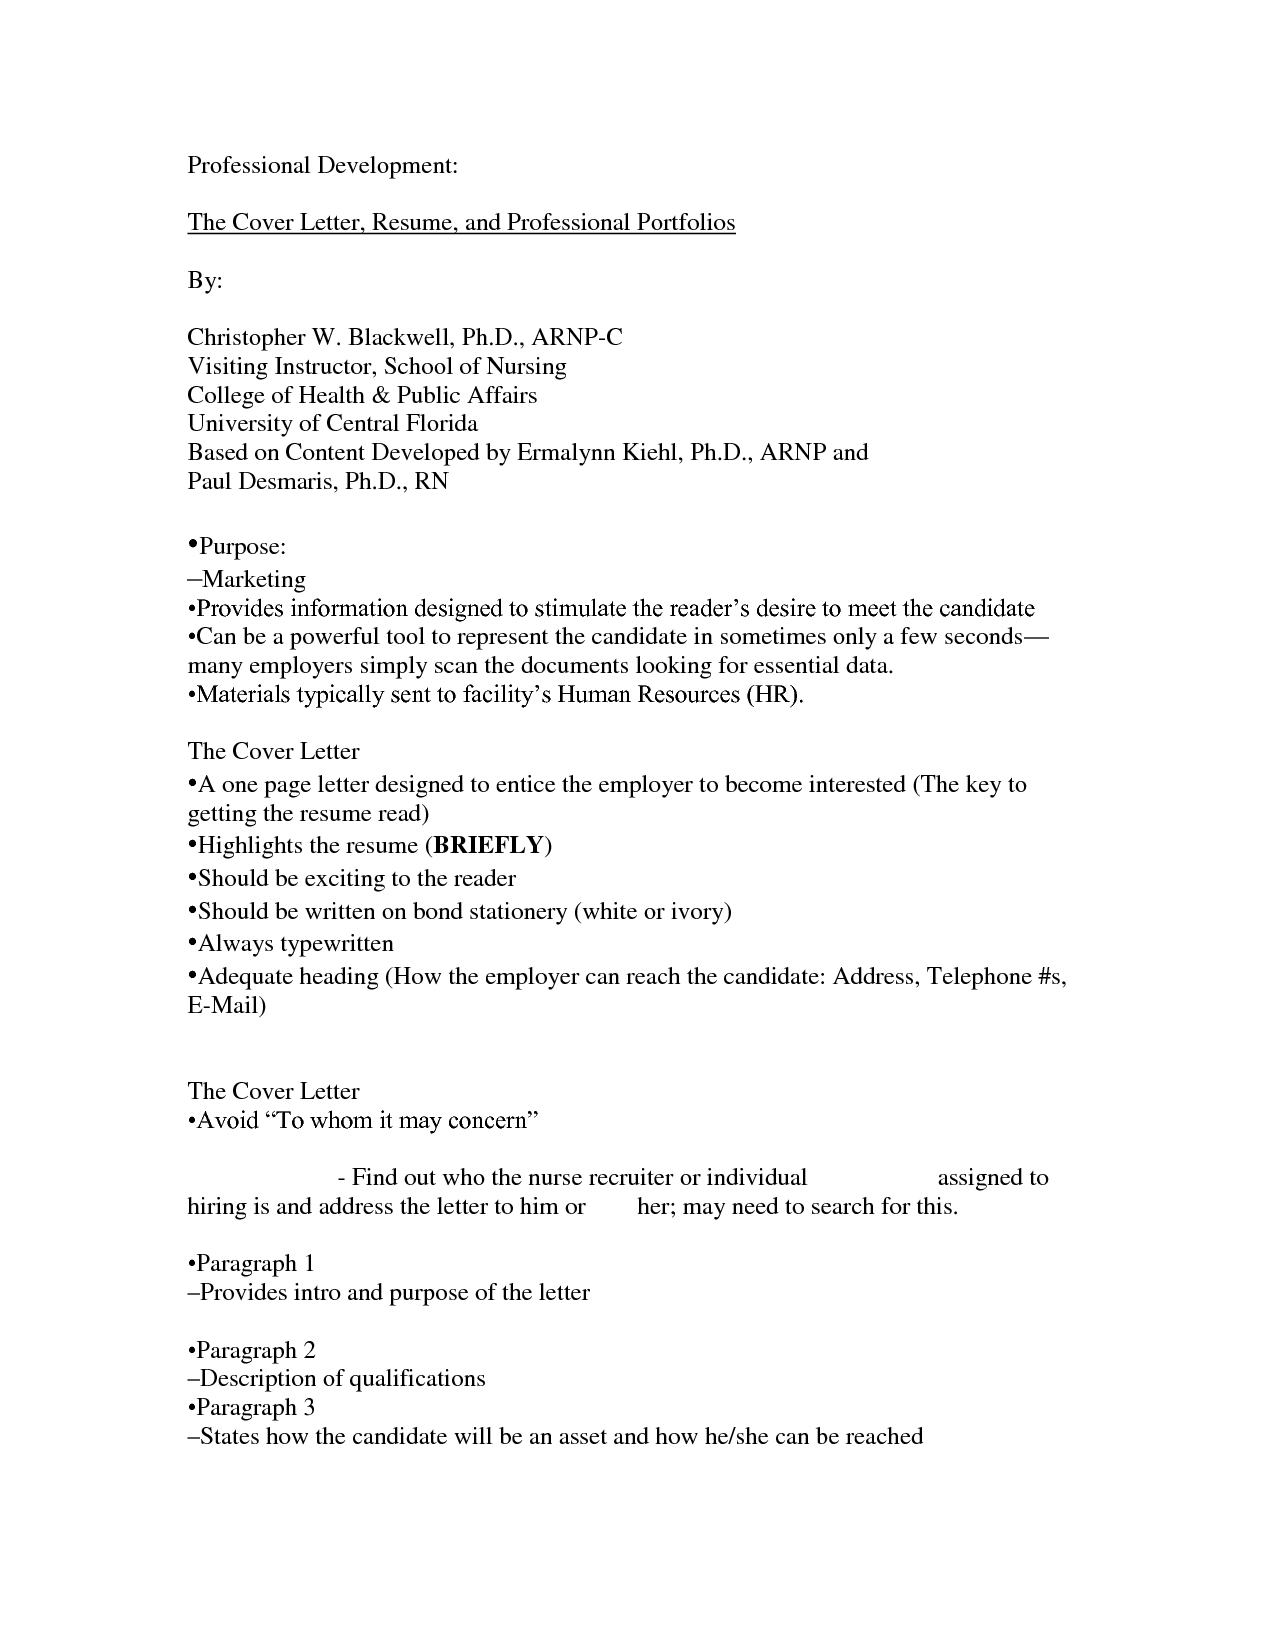 Cover Letter For Job Resume Cover Letter For Job Resume Template